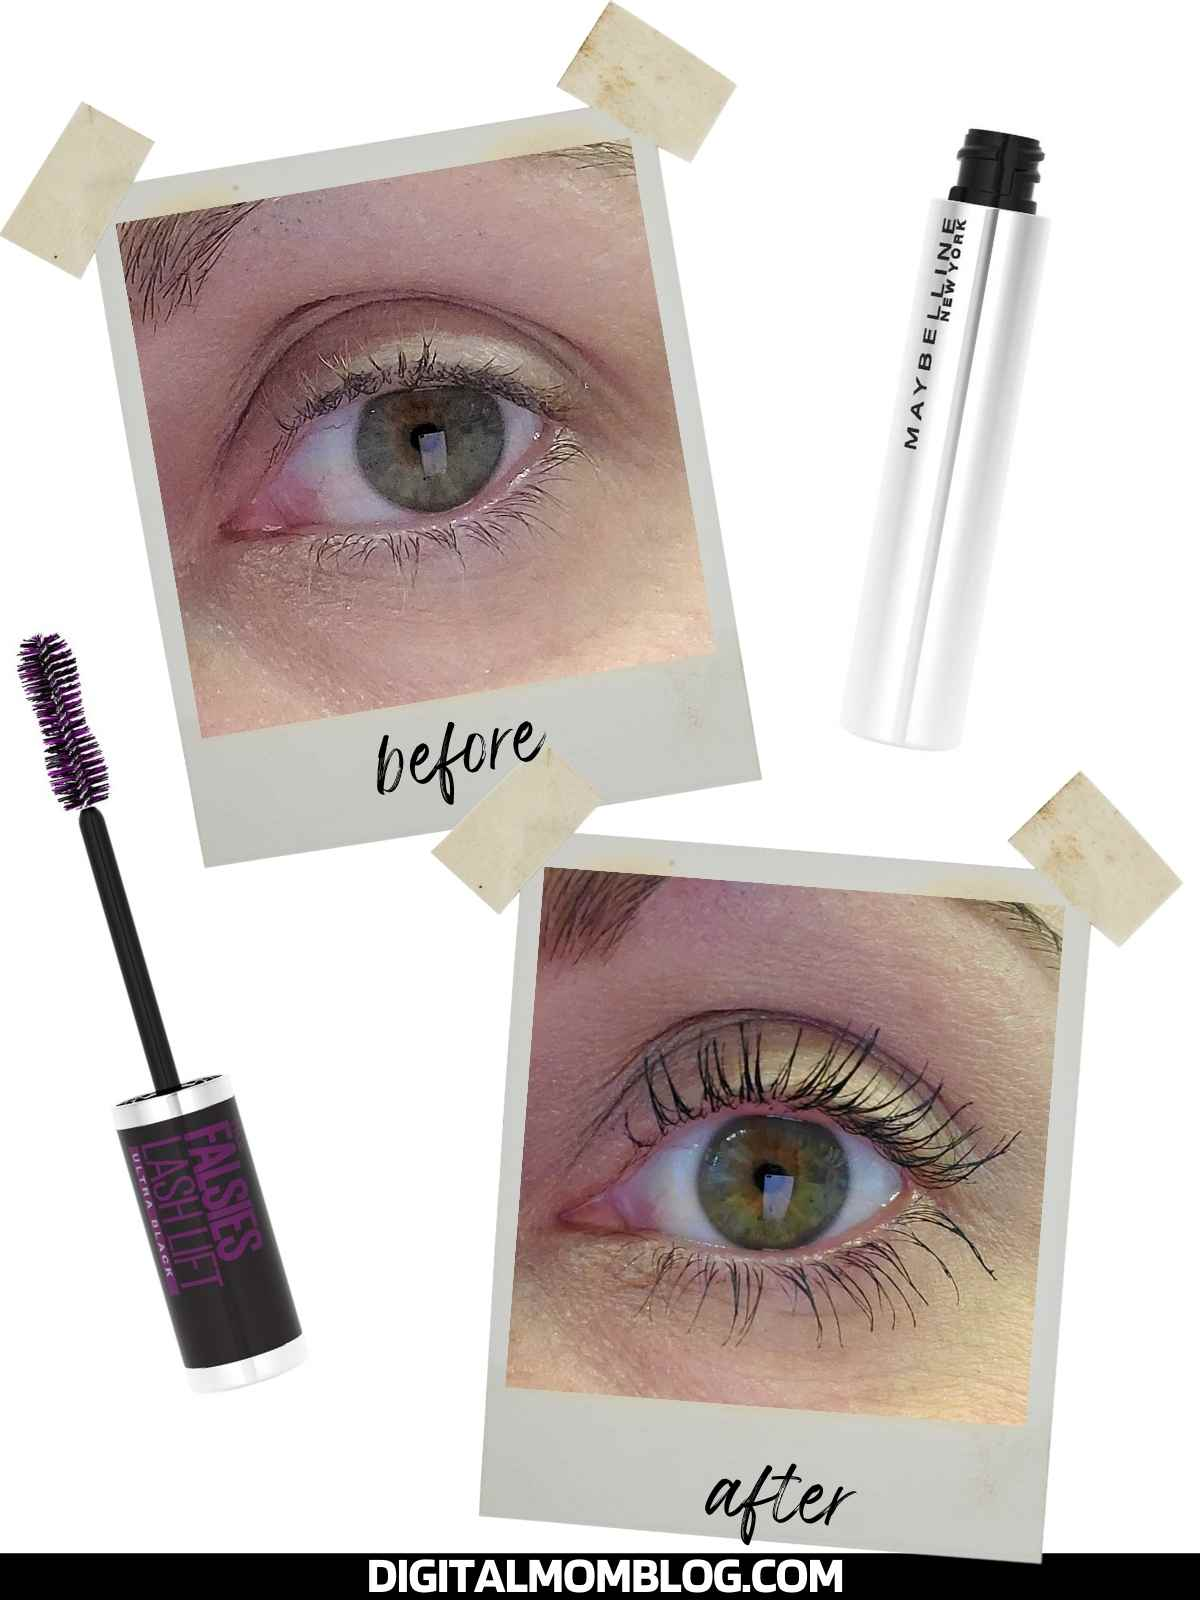 maybelline falsies lash lift mascara before and after photos